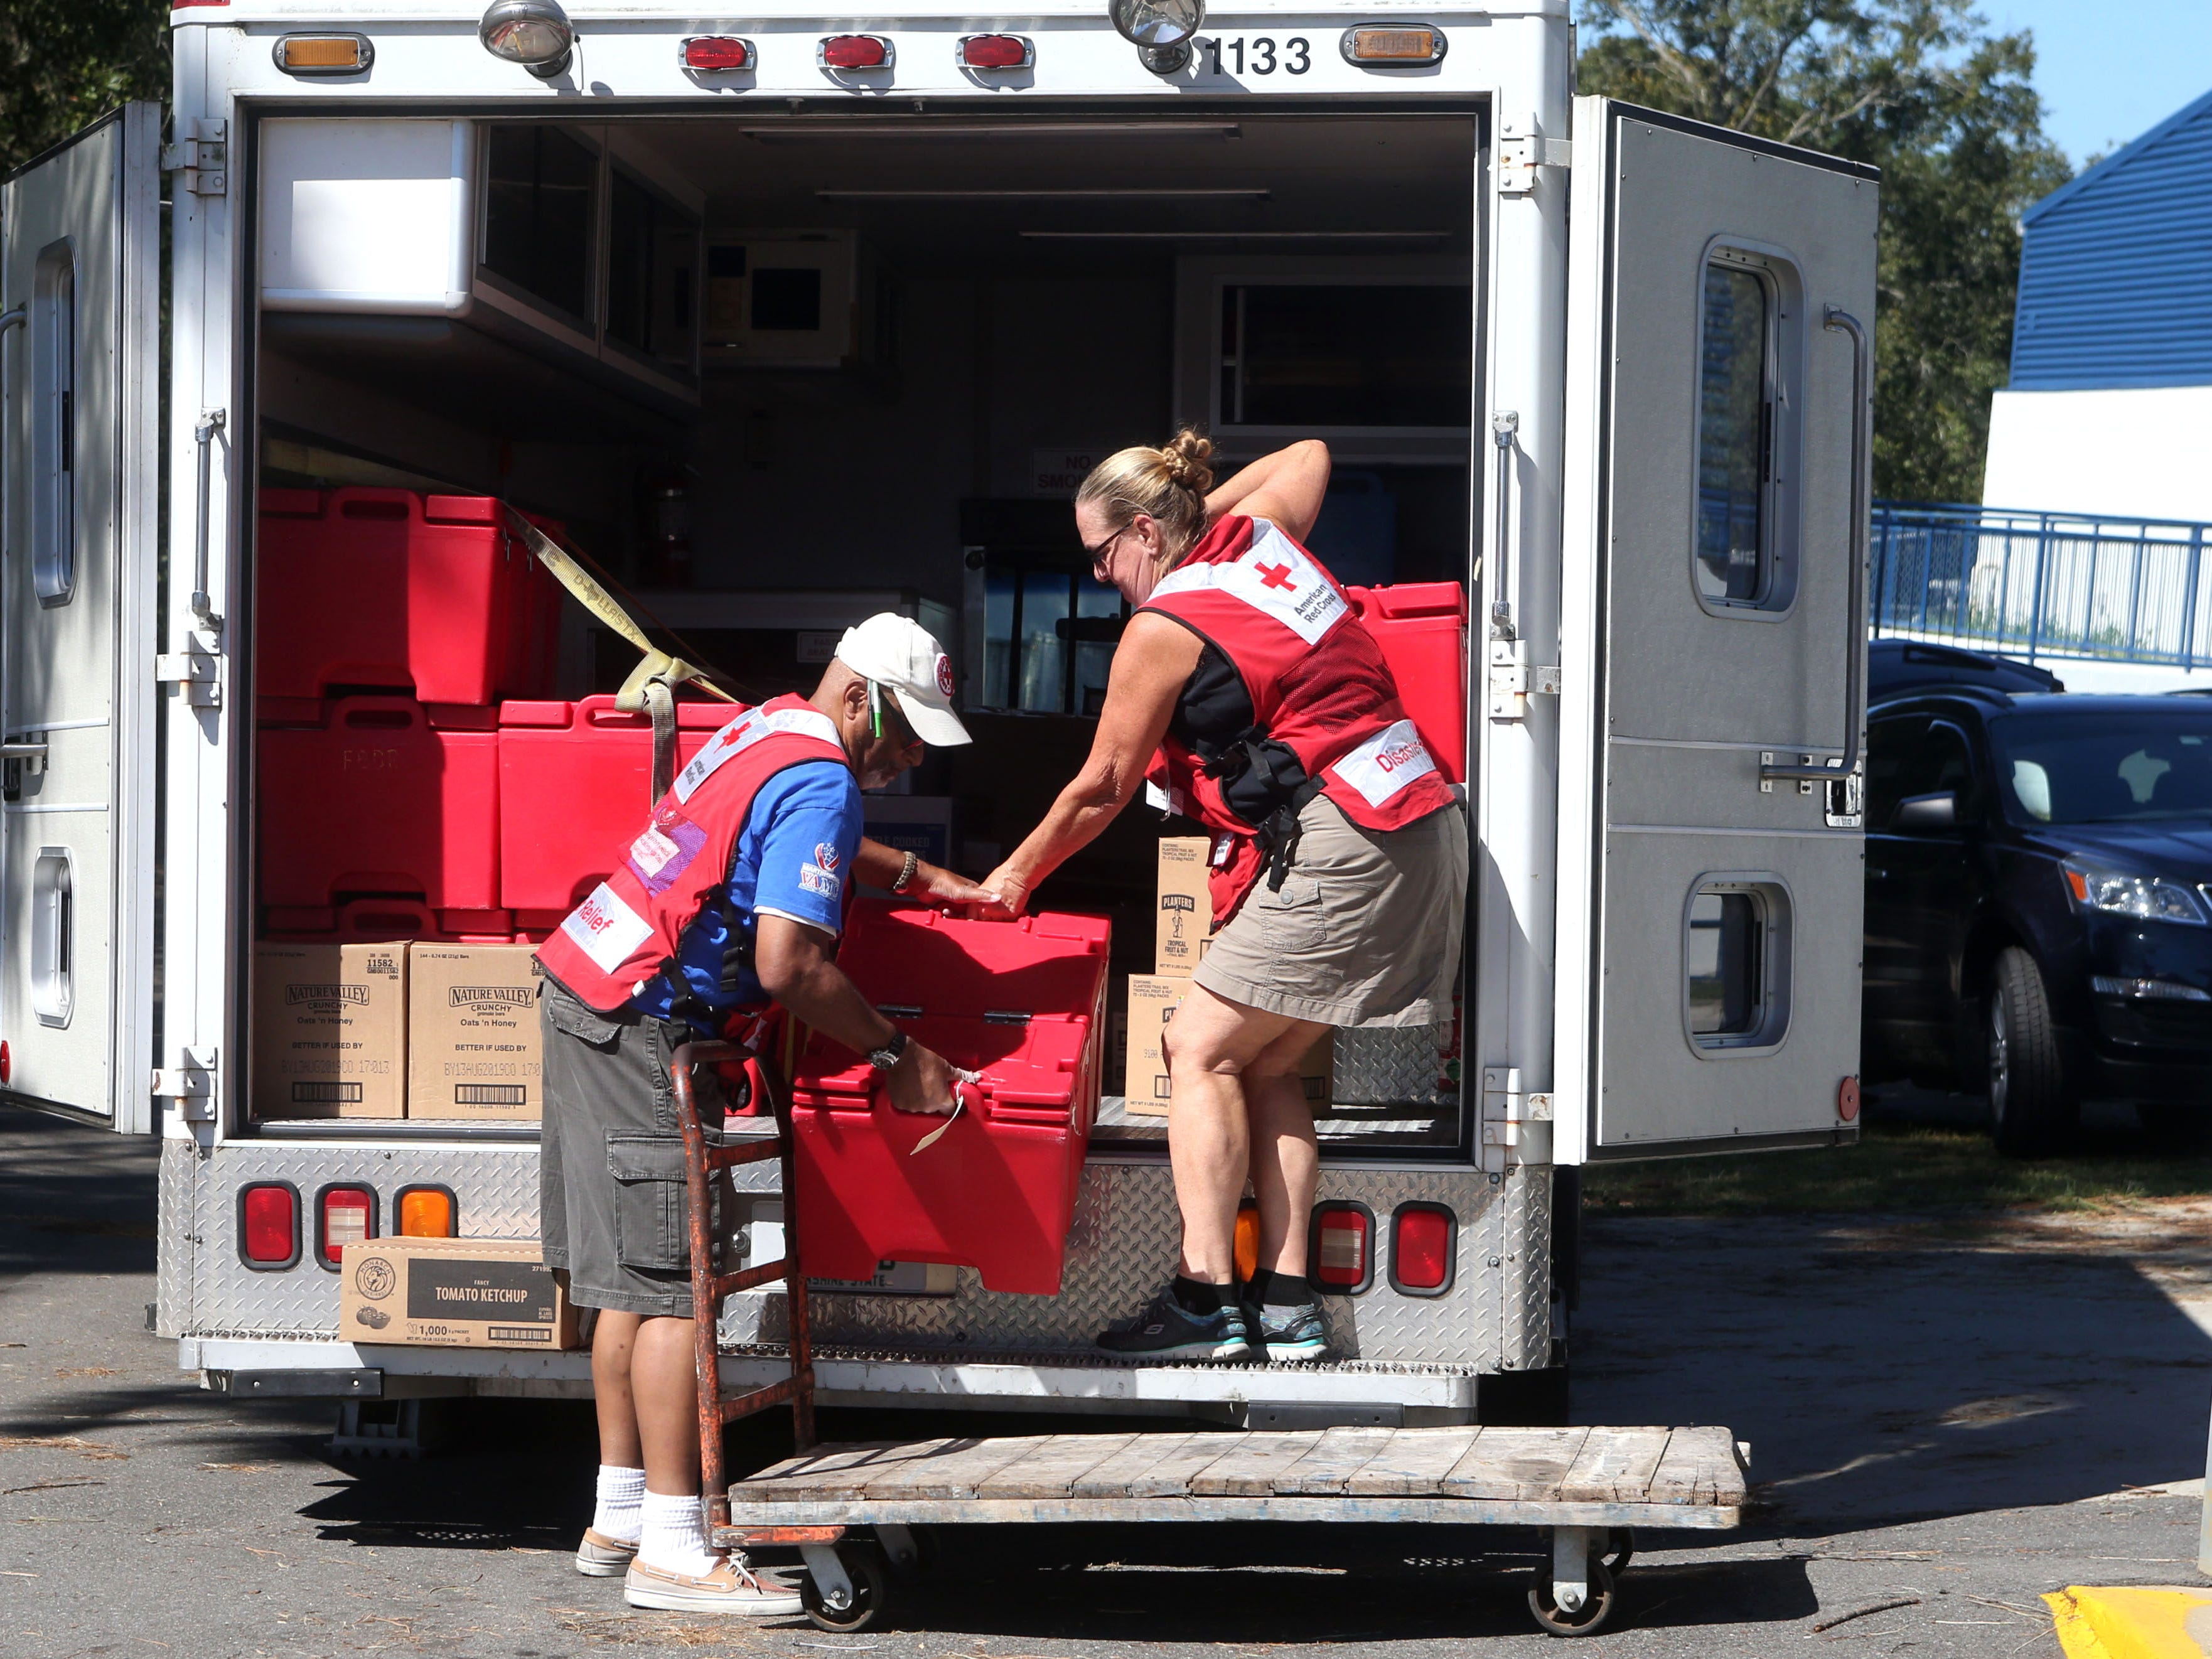 Red Cross volunteers deliver meals to SAIL high school for Tallahasseeans seeking refuge on Oct. 13, 2018, three days after Hurricane Michael struck the Florida panhandle.